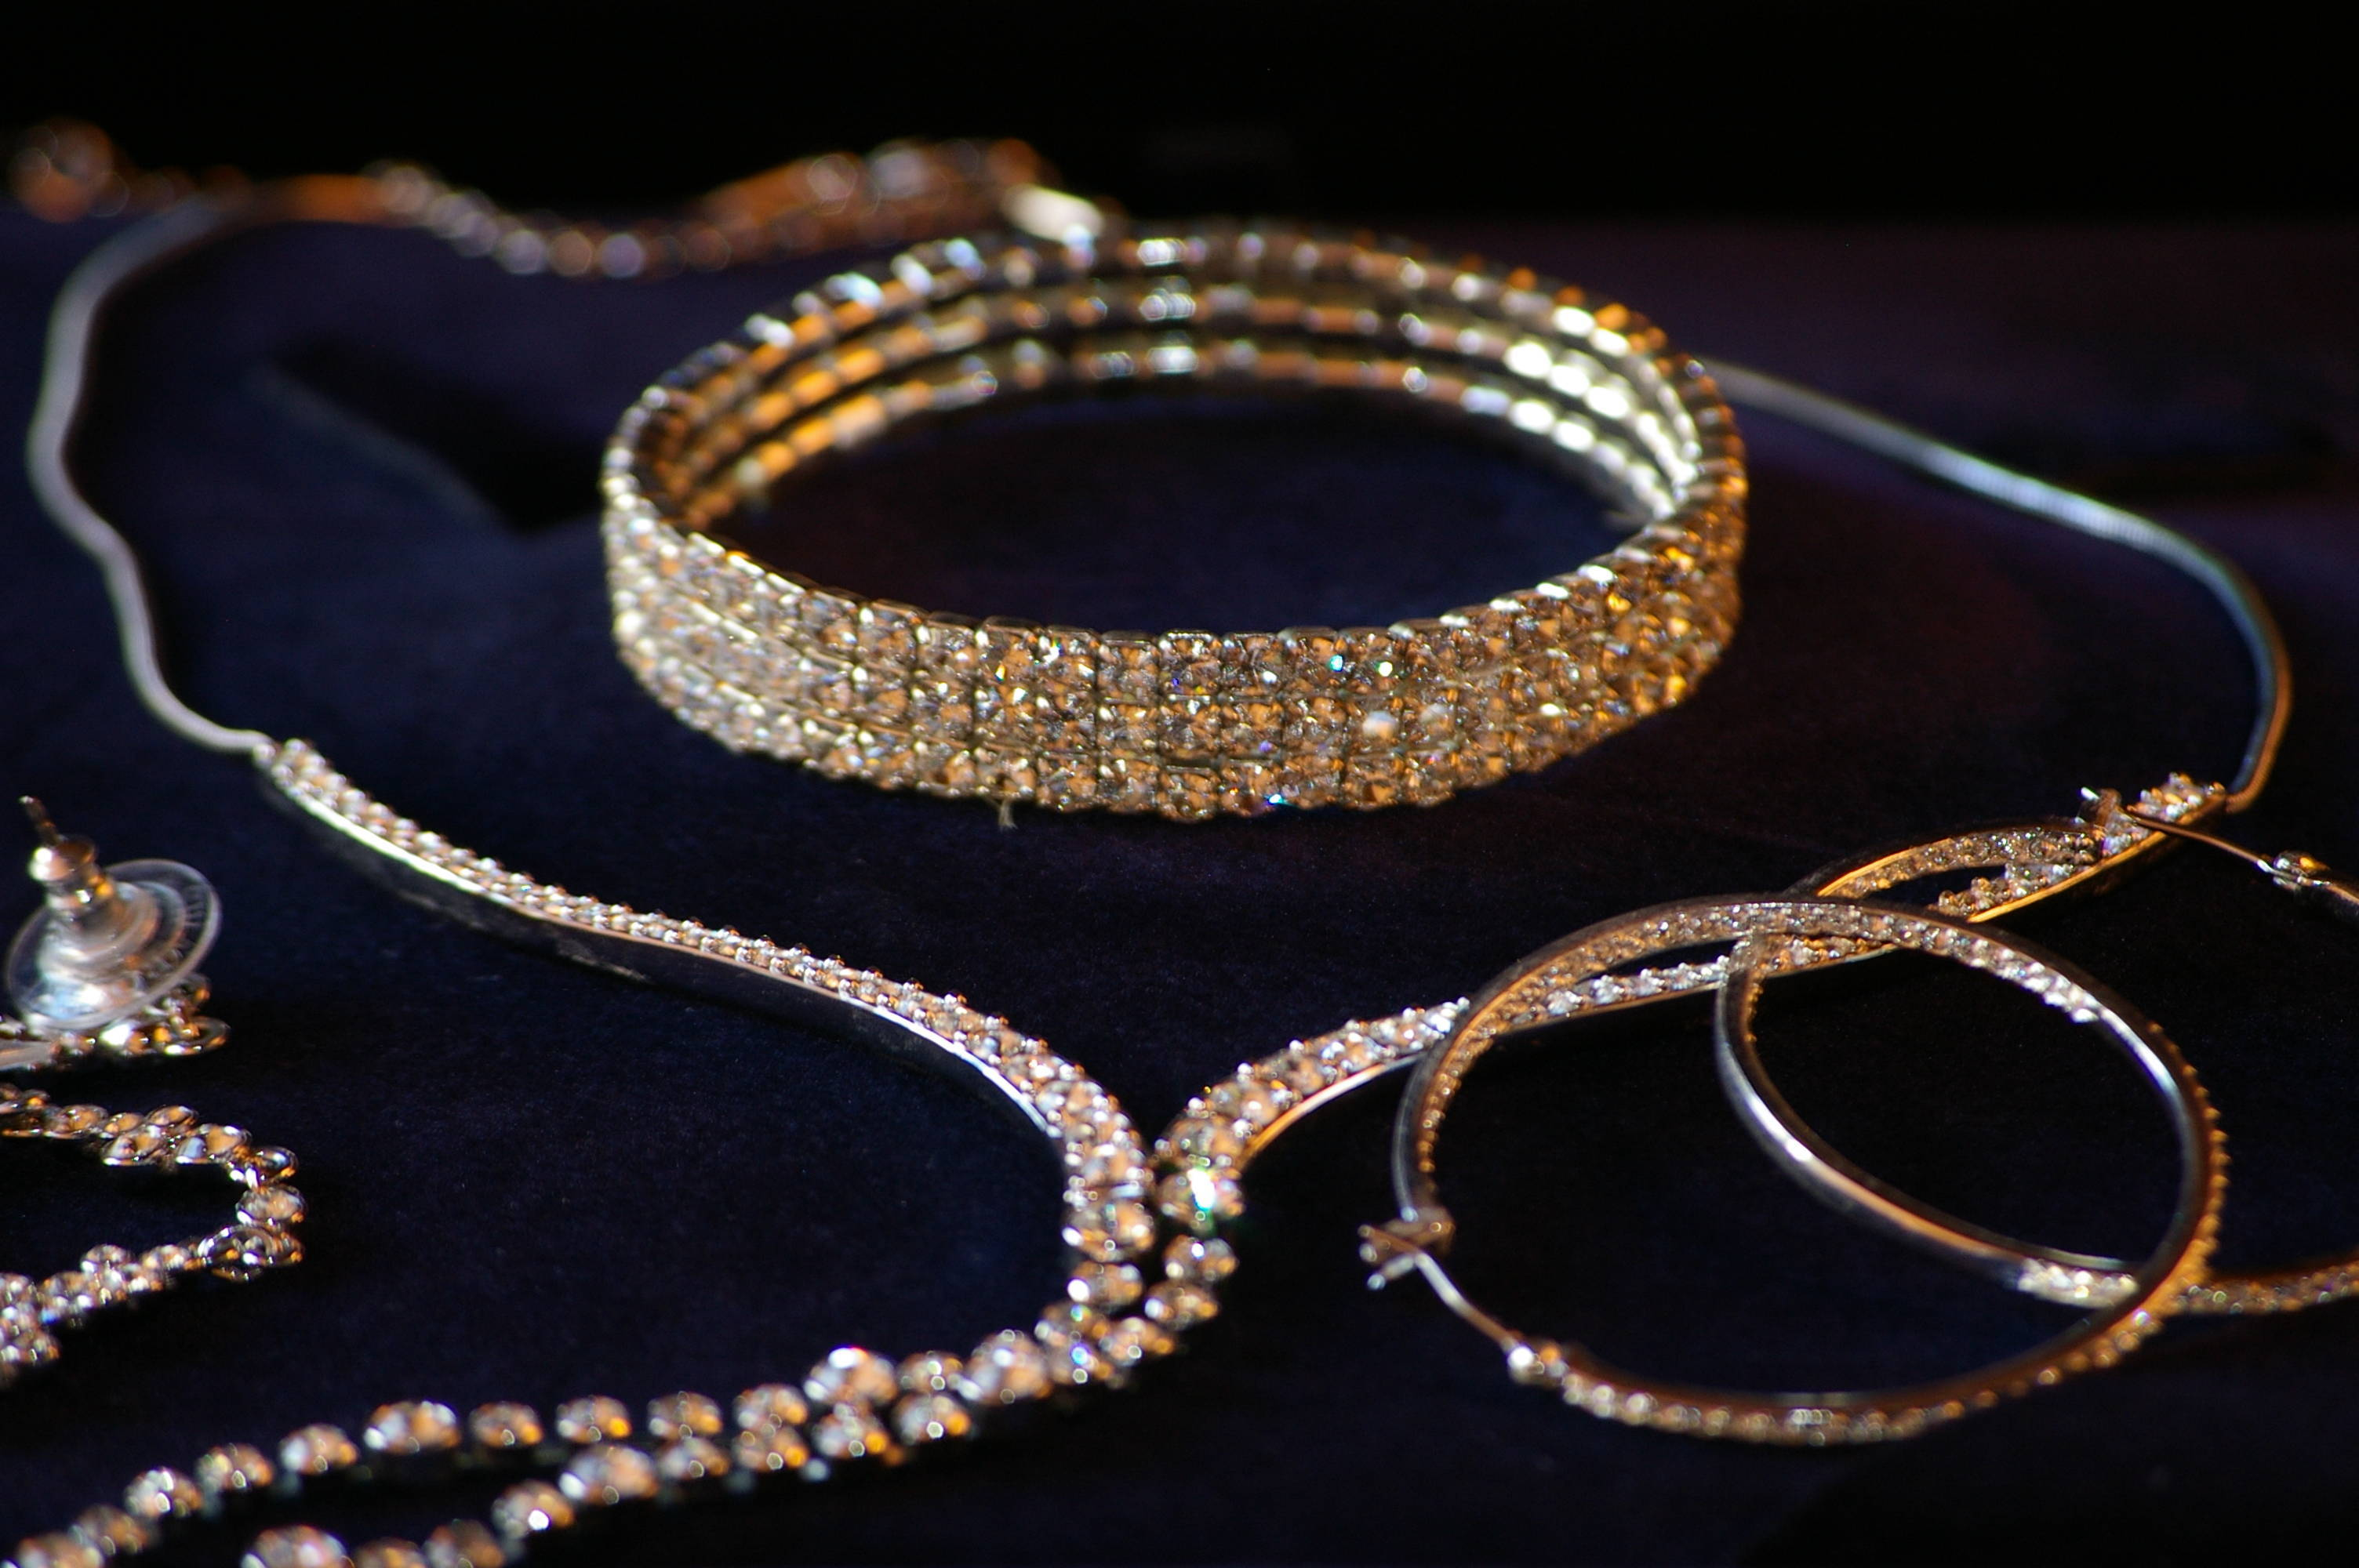 Moving Man Steals $28K in Jewels from Budd Lake Newbies, say Police ...